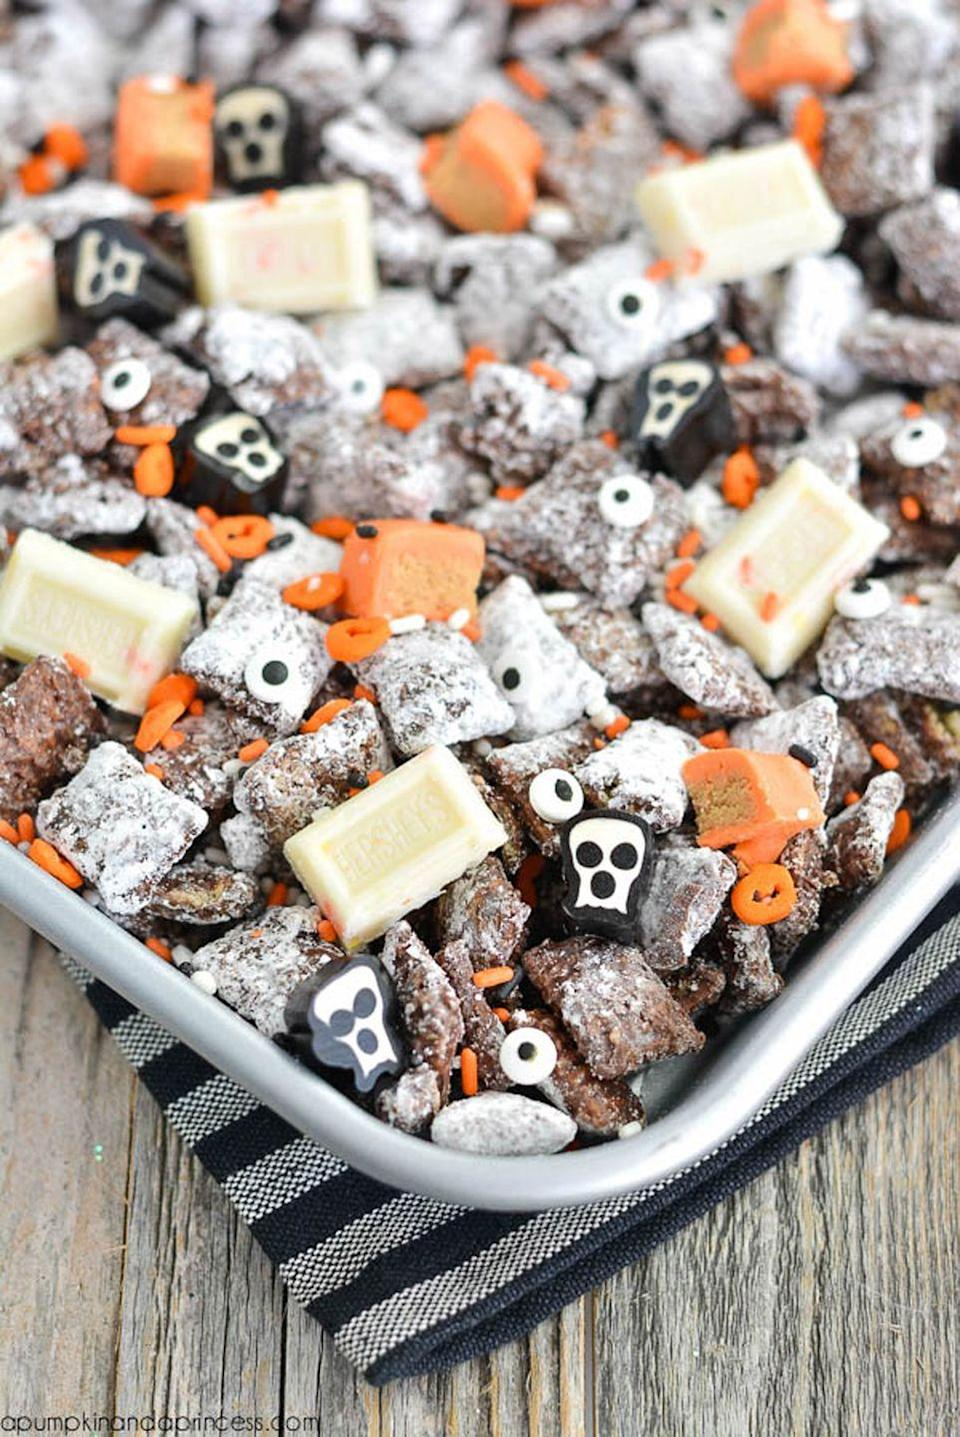 """<p>This festive mix will be your go-to snack during <a href=""""https://www.countryliving.com/life/entertainment/g3624/best-halloween-movies/"""" rel=""""nofollow noopener"""" target=""""_blank"""" data-ylk=""""slk:Halloween movie marathons"""" class=""""link rapid-noclick-resp"""">Halloween movie marathons</a>. <br></p><p><strong>Get the recipe at <a href=""""https://apumpkinandaprincess.com/halloween-muddy-buddies/"""" rel=""""nofollow noopener"""" target=""""_blank"""" data-ylk=""""slk:A Pumpkin and a Princess"""" class=""""link rapid-noclick-resp"""">A Pumpkin and a Princess</a>.</strong> </p>"""